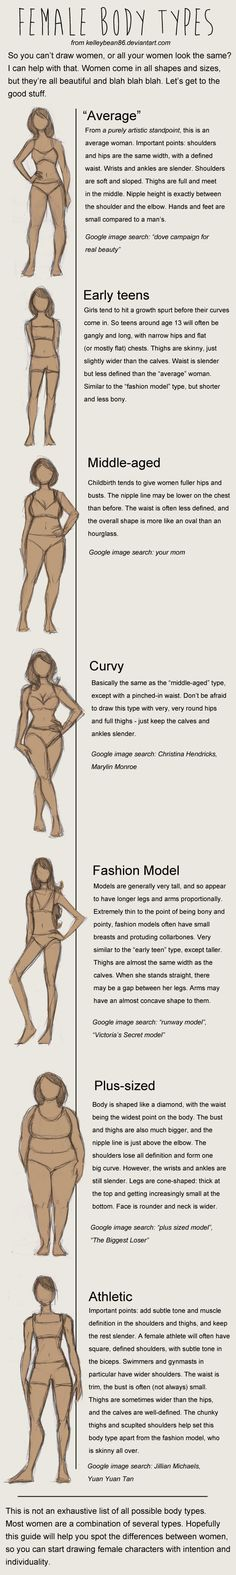 Draw Female Body Types by on deviantART. I know it's meant for drawing, but. Does seem more useful than drawing tips. Drawing Techniques, Drawing Tips, Drawing Stuff, Drawing Ideas, Design Reference, Art Reference, Human Drawing Reference, Drawing Female Body, Poses References